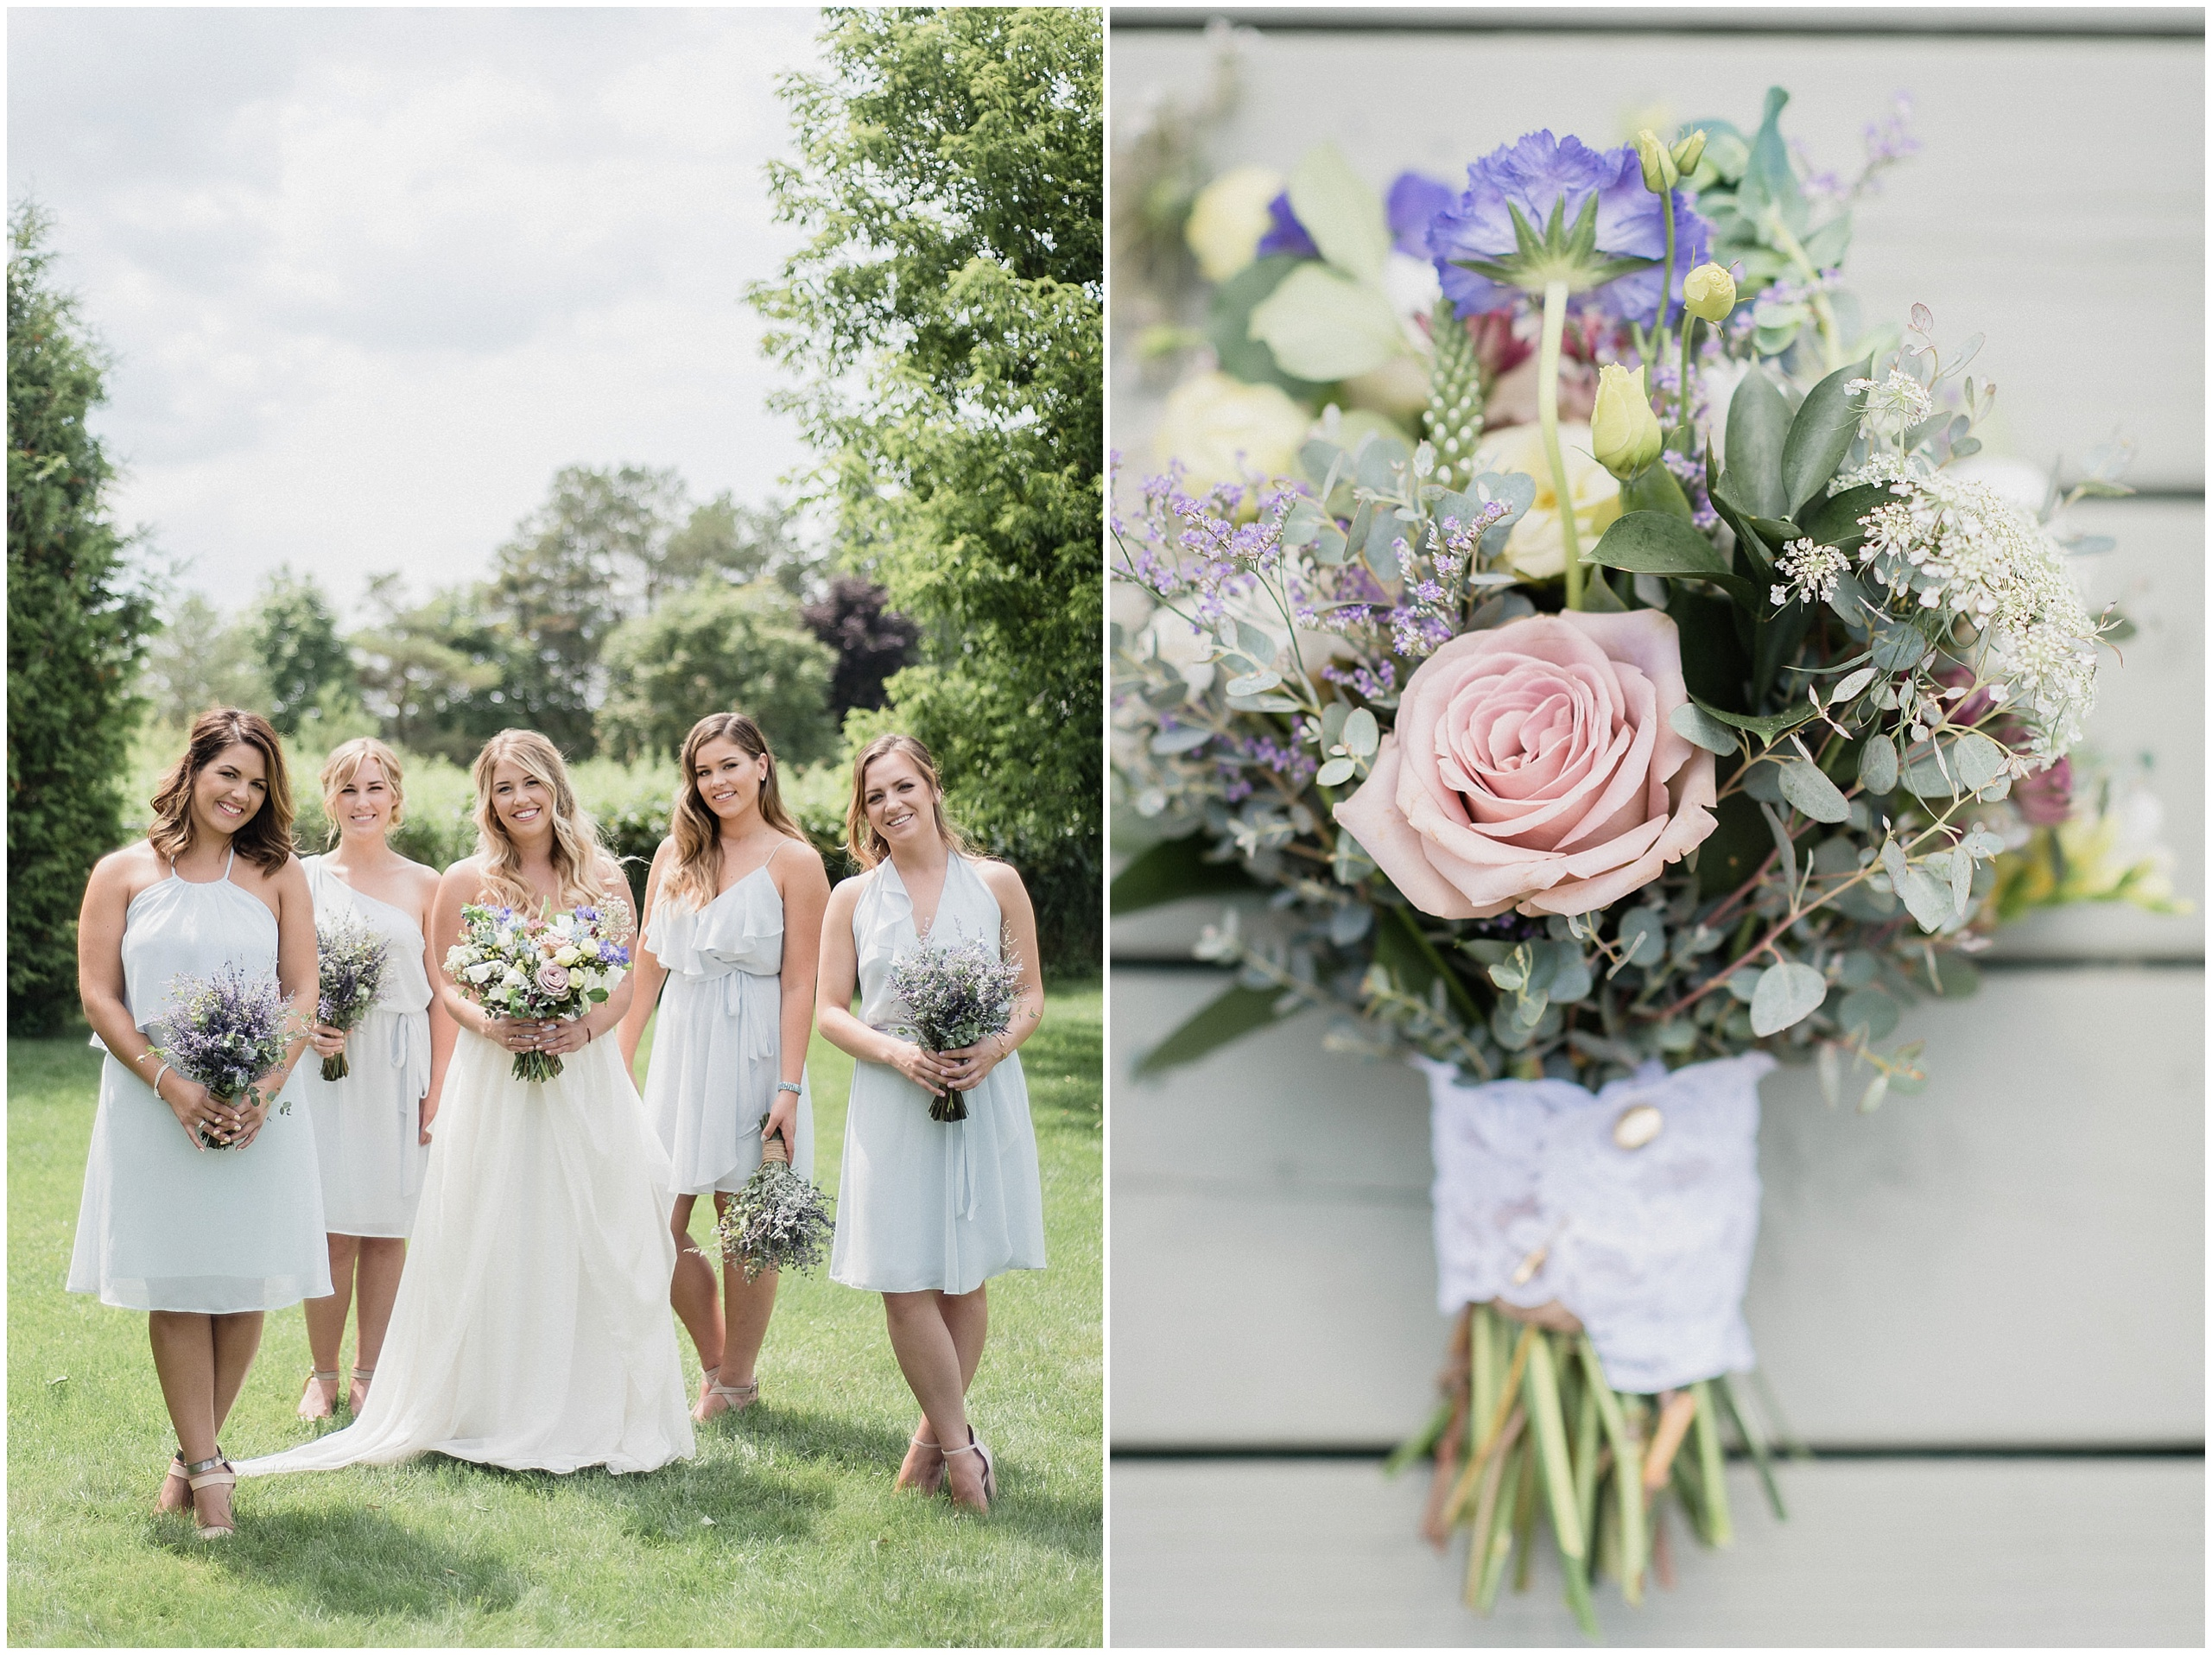 Nouvelle Amsale bridesmaids dresses and Coriander Girl bouqets photographed by Jenn Kavanagh Photography